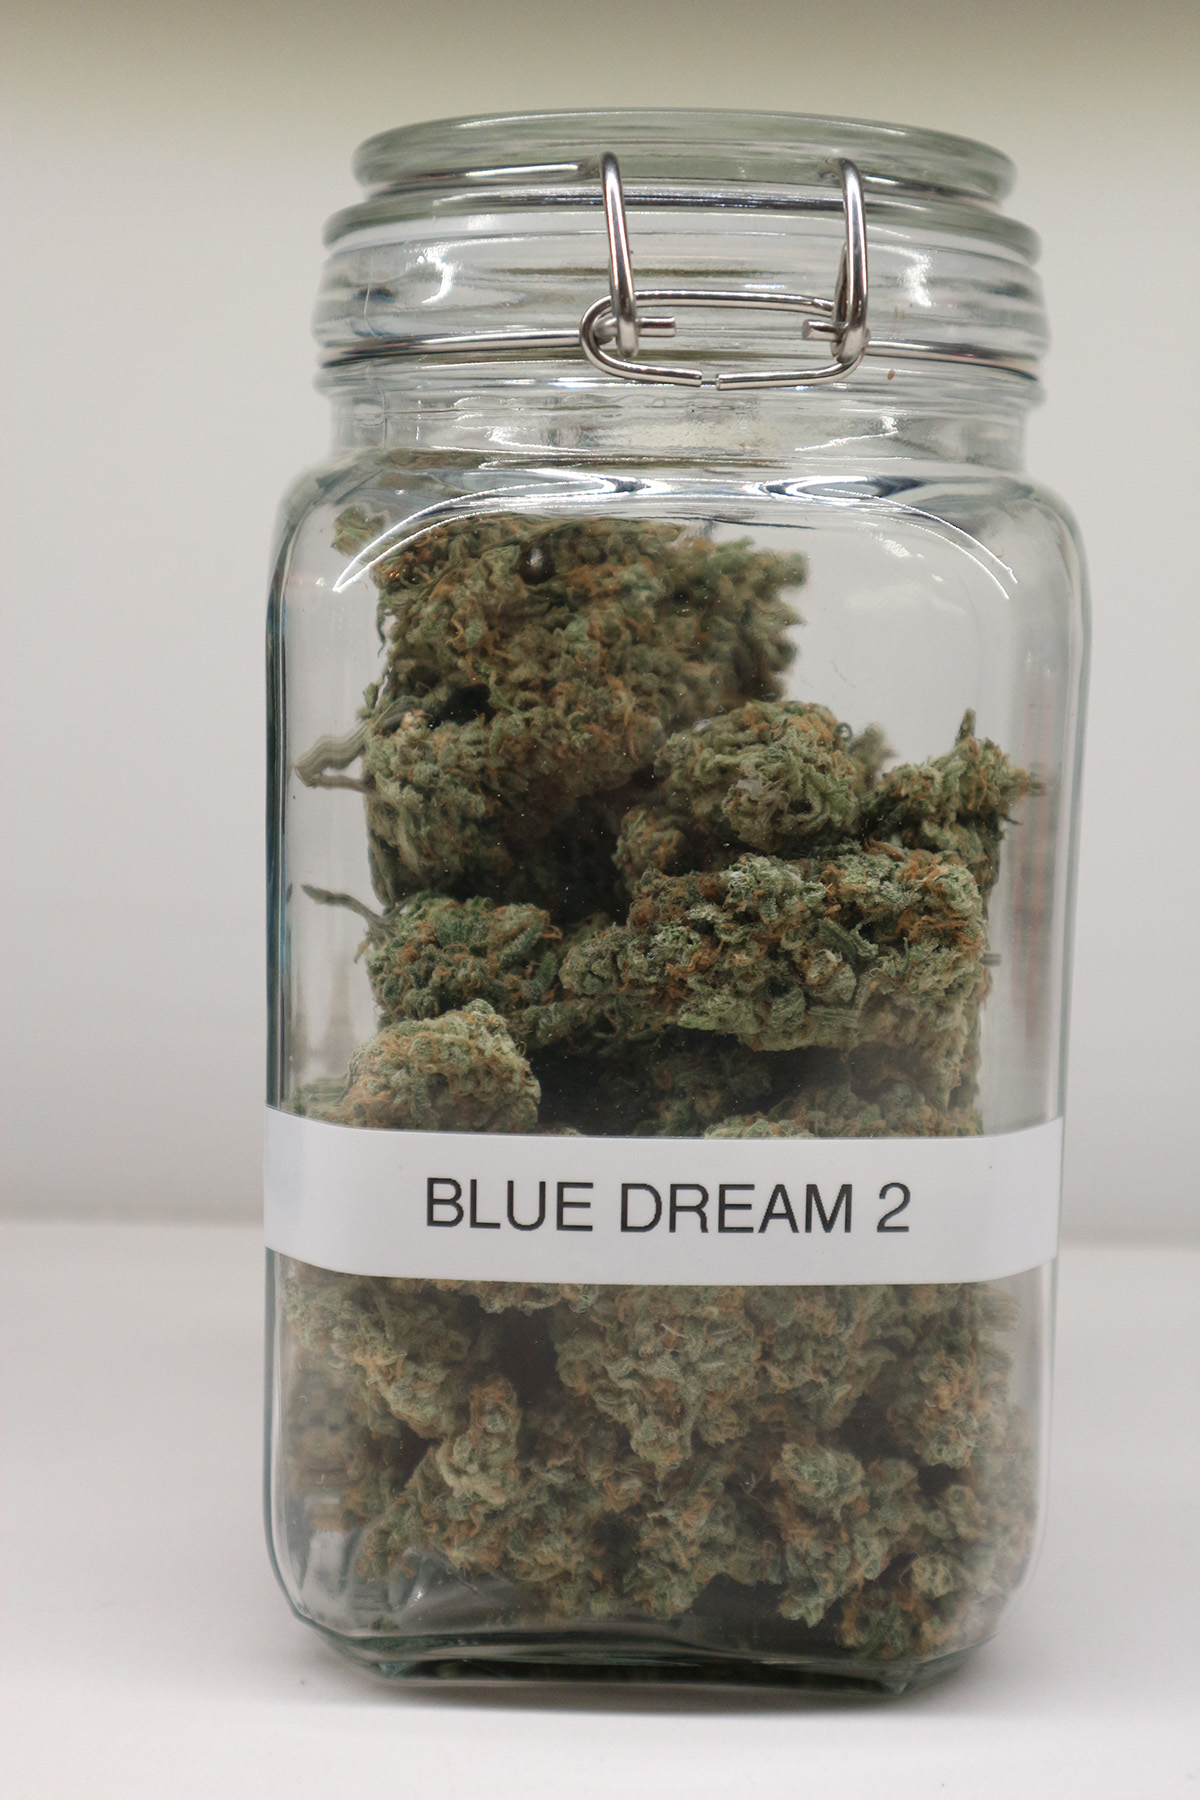 Blue Dream 2